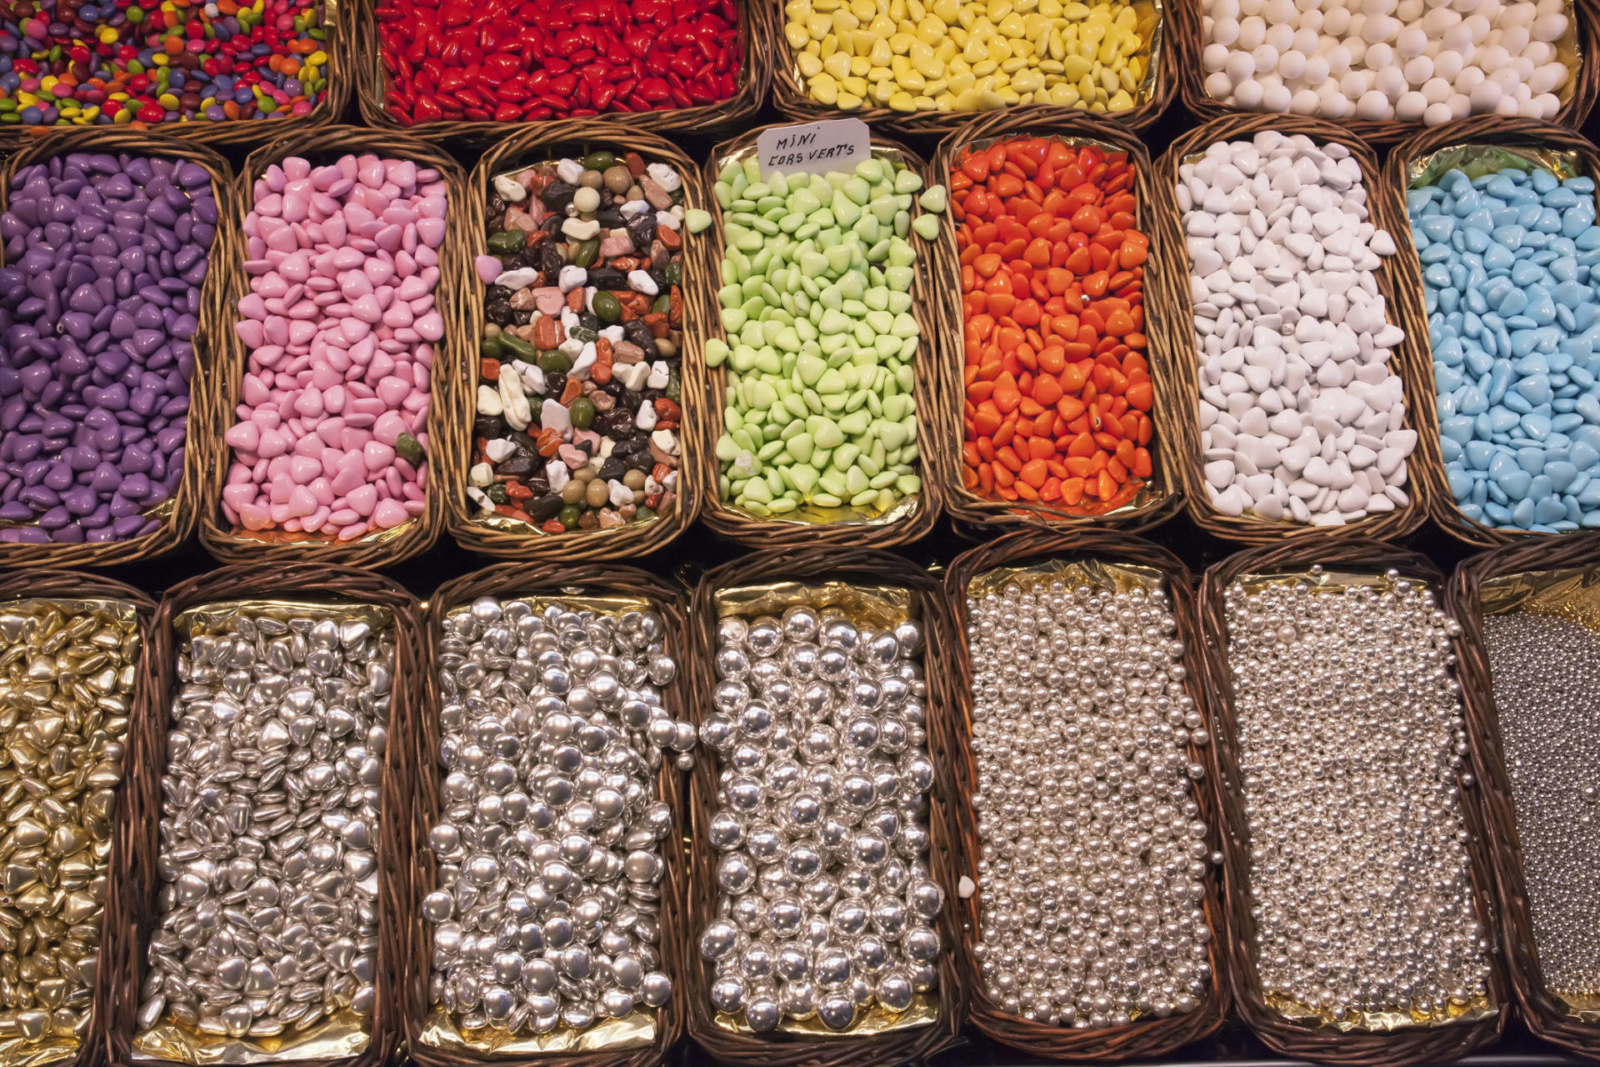 sweets, jelly beans of different colors, in baskets on the shelves, Spain